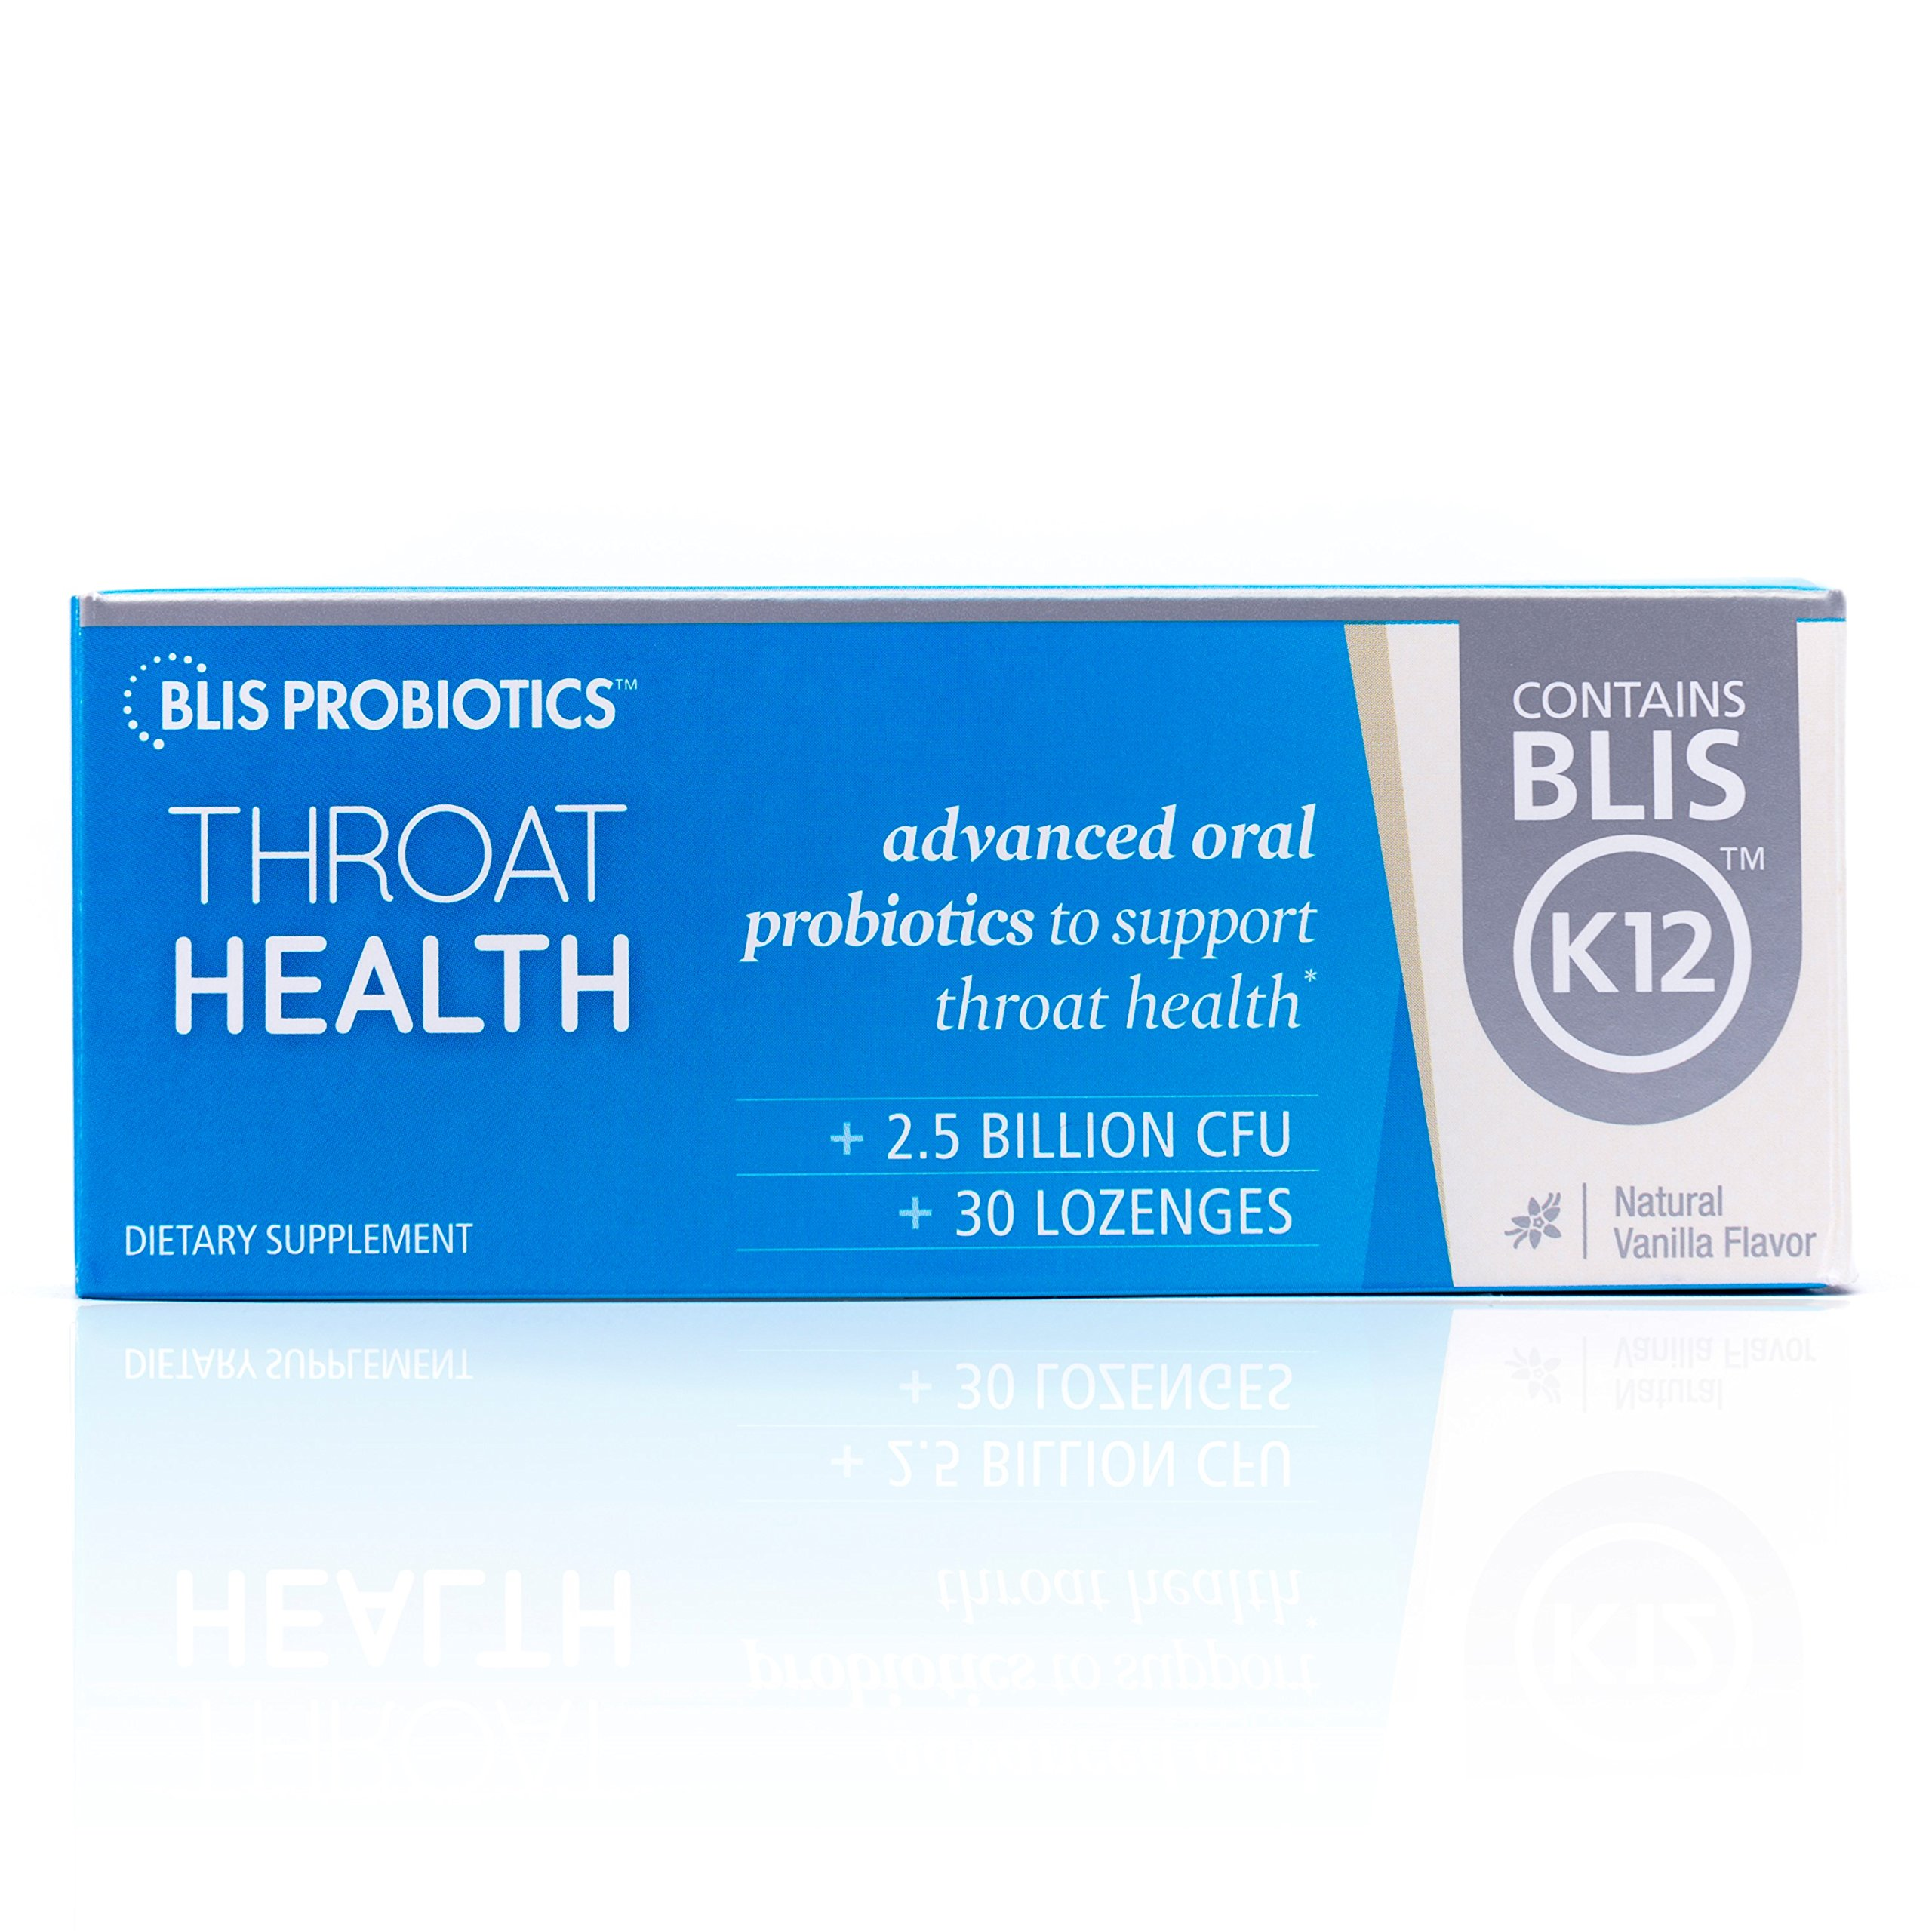 BLIS ThroatHealth Oral Probiotic, Most Potent BLIS K12 Formula Available, 2.5 Billion CFU, Throat Immunity Support for Adults and Kids, Sugar-Free Lozenges, 30 Day Supply by bliss (Image #1)